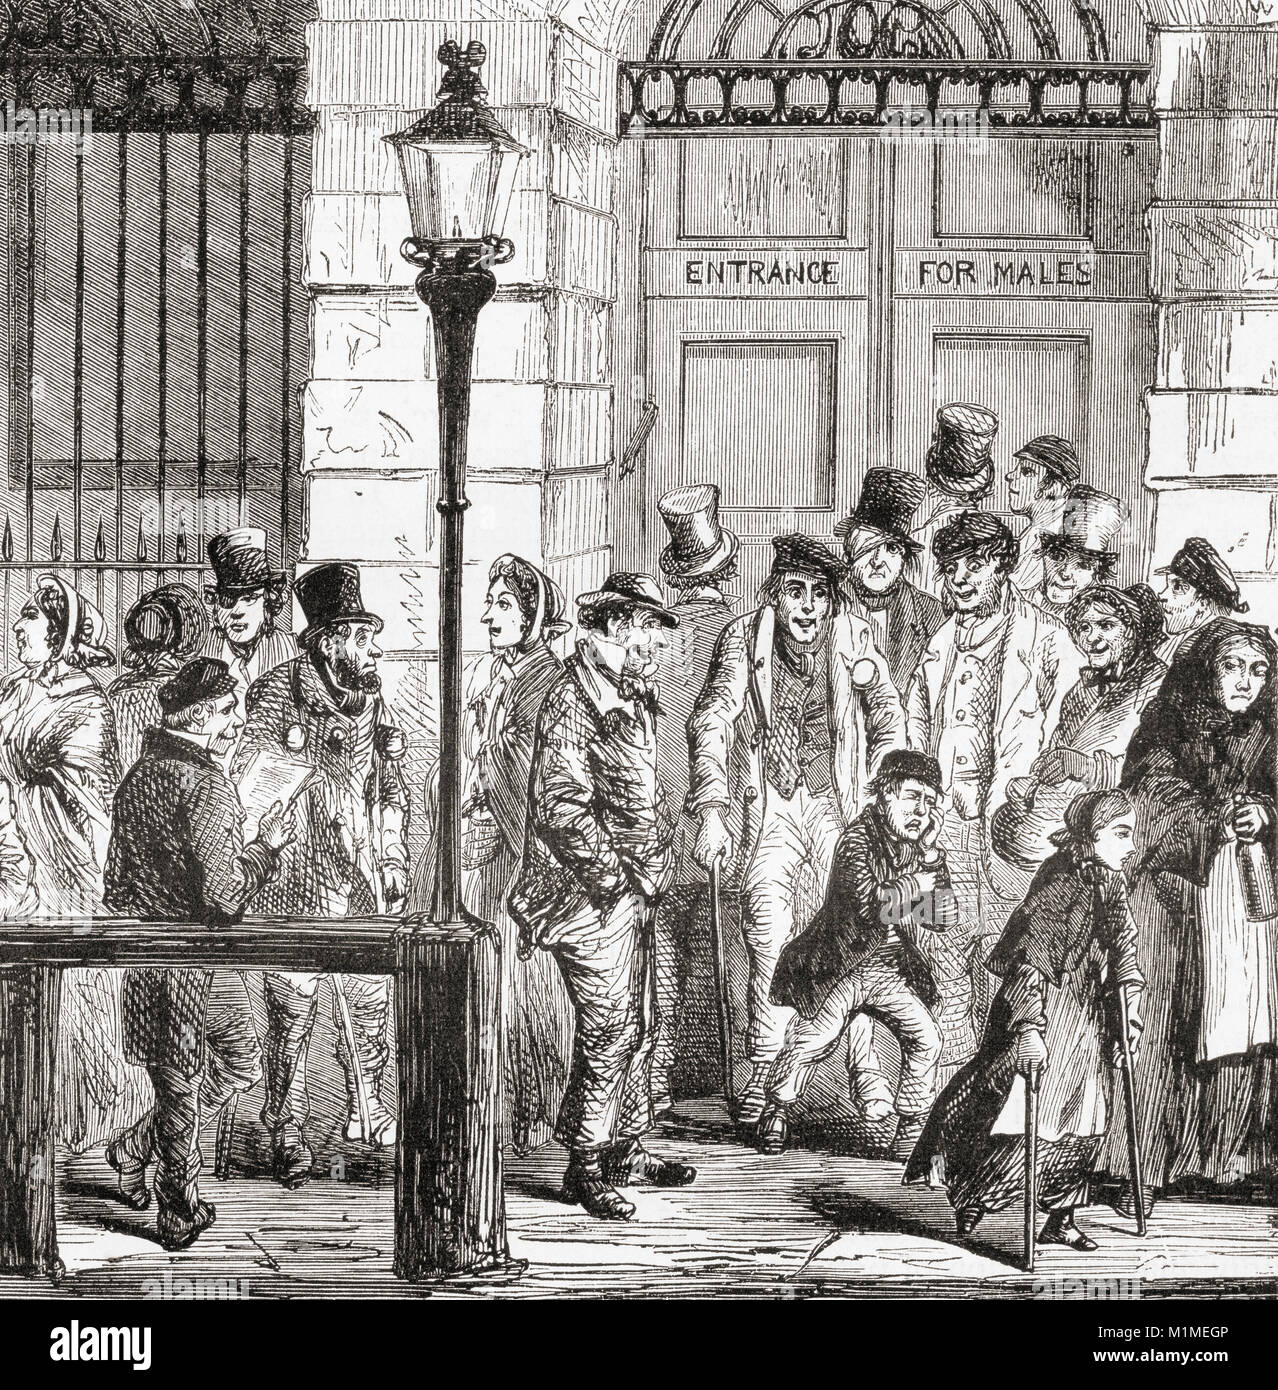 Poor people waiting at a hospital door in early 19th century London, England.  From Ward and Lock's Illustrated - Stock Image